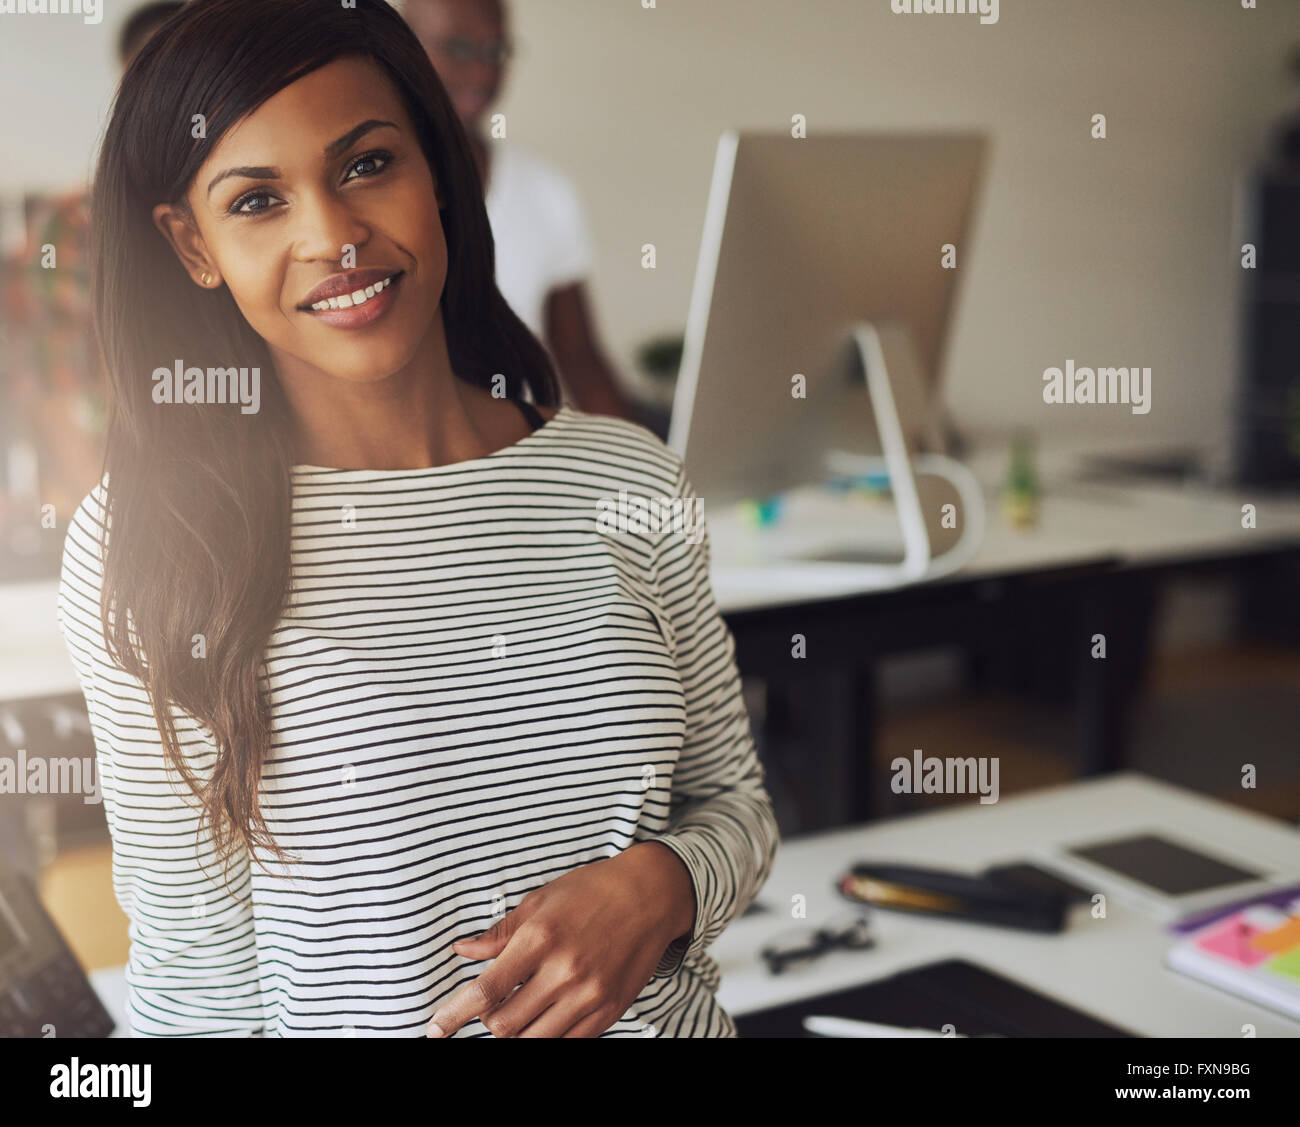 Single gorgeous female business owner wearing black and white striped blouse with partner on computer in background Stock Photo